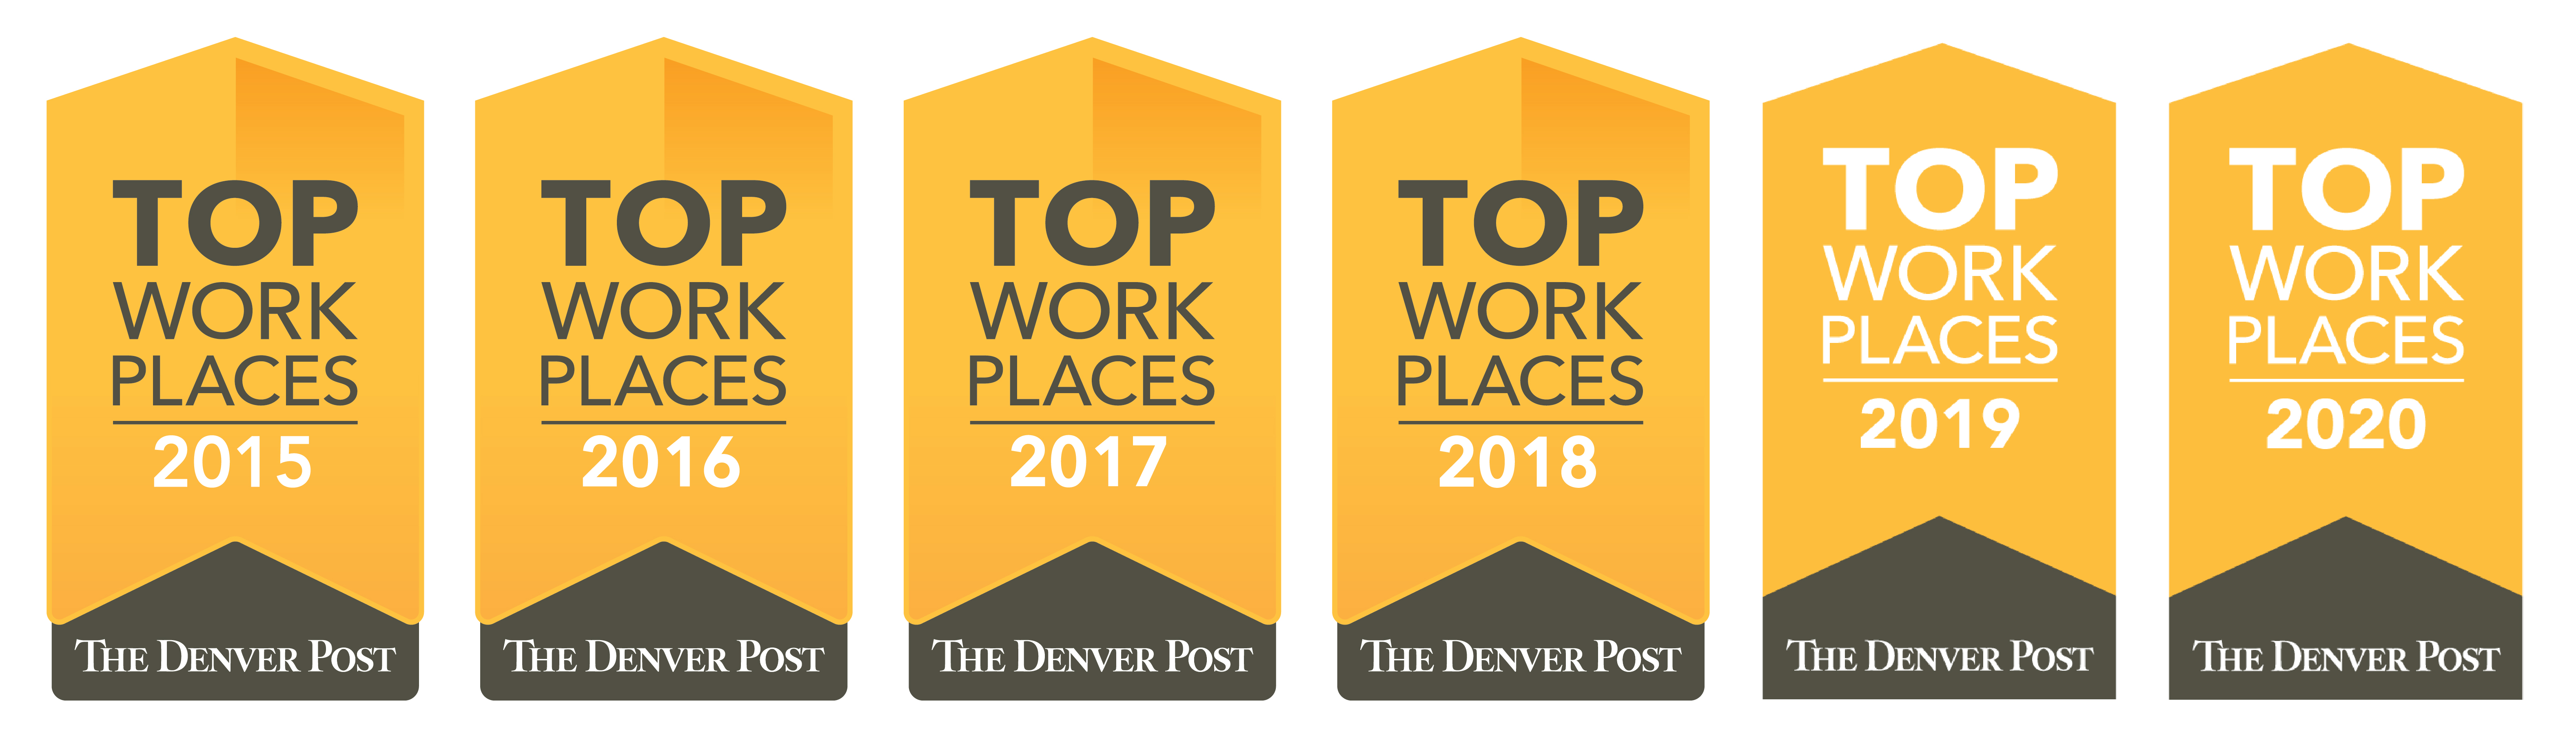 Top Place to work 2020